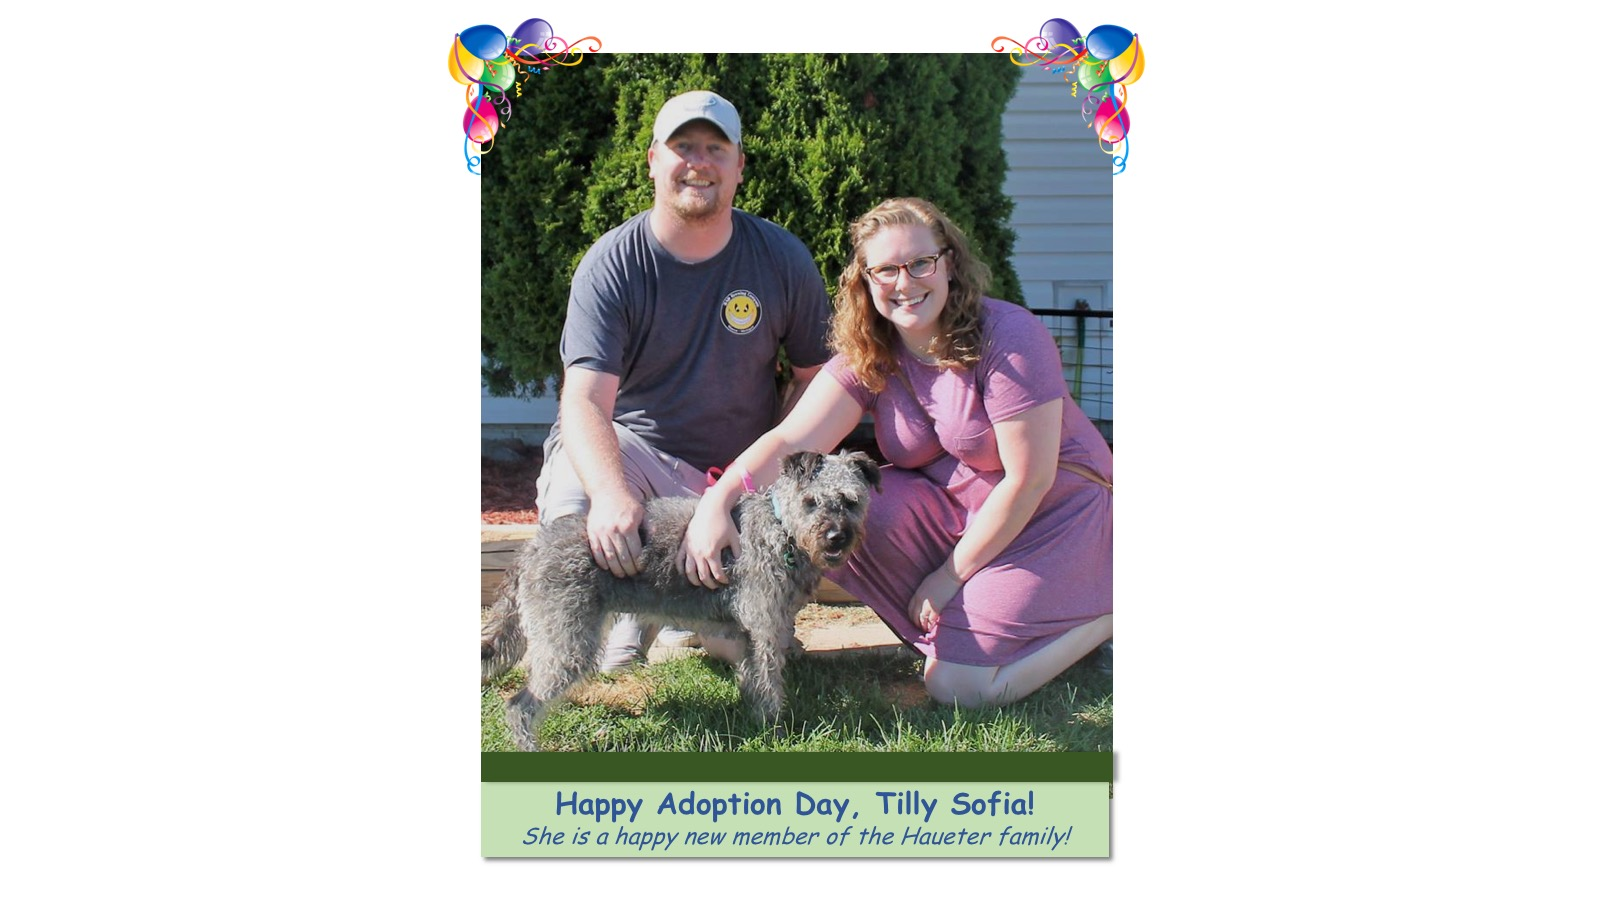 Tilly_Sofia_Adoption_Photo_2018.jpg